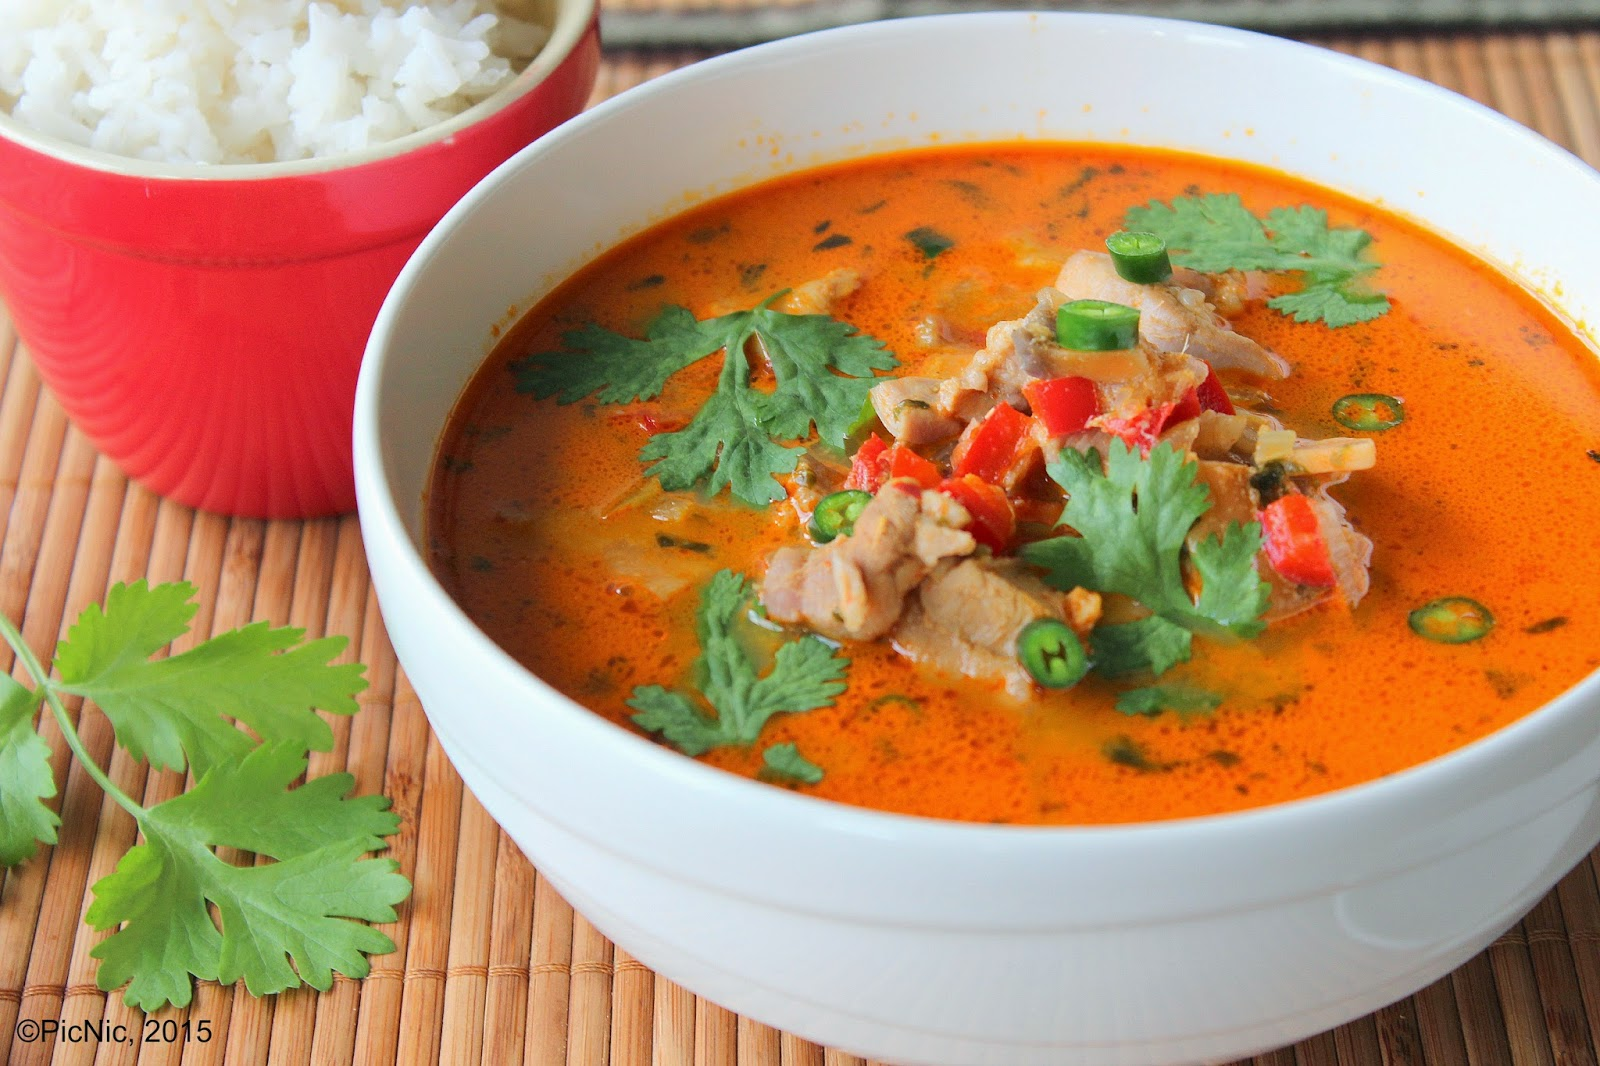 PicNic: Thai Red Curry